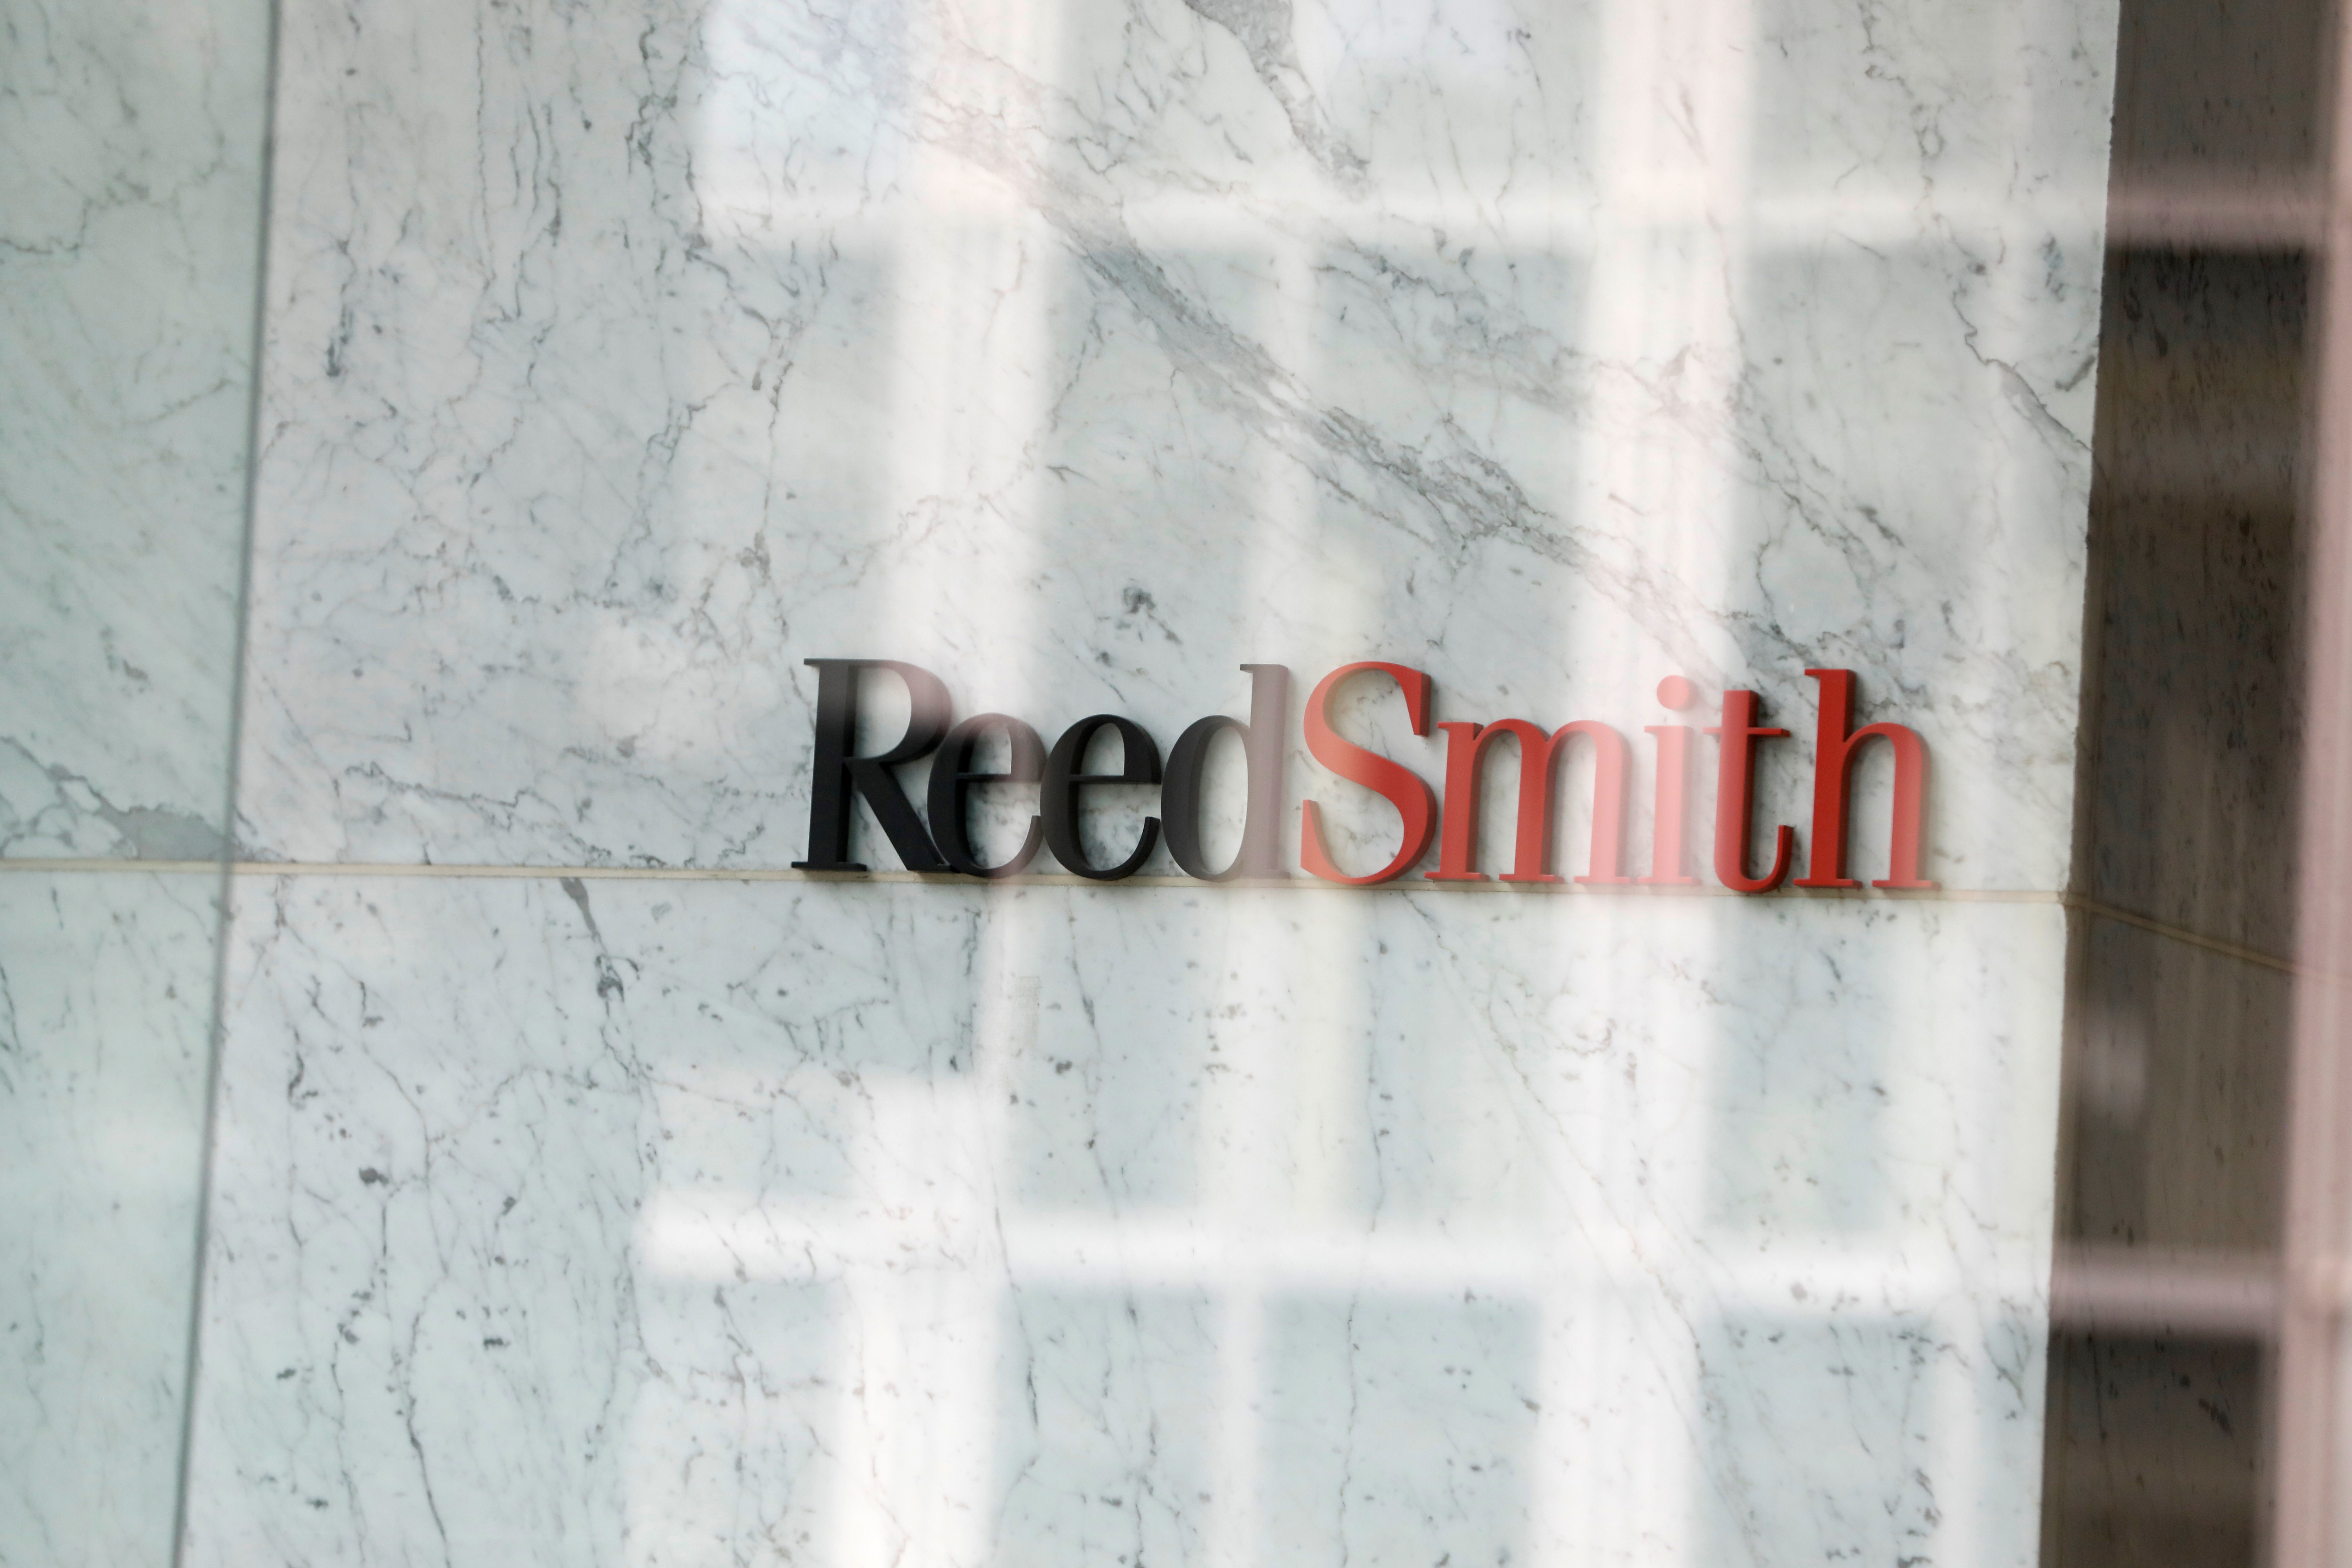 Reed Smith LLP office in Manhattan, New York City. REUTERS/Andrew Kelly